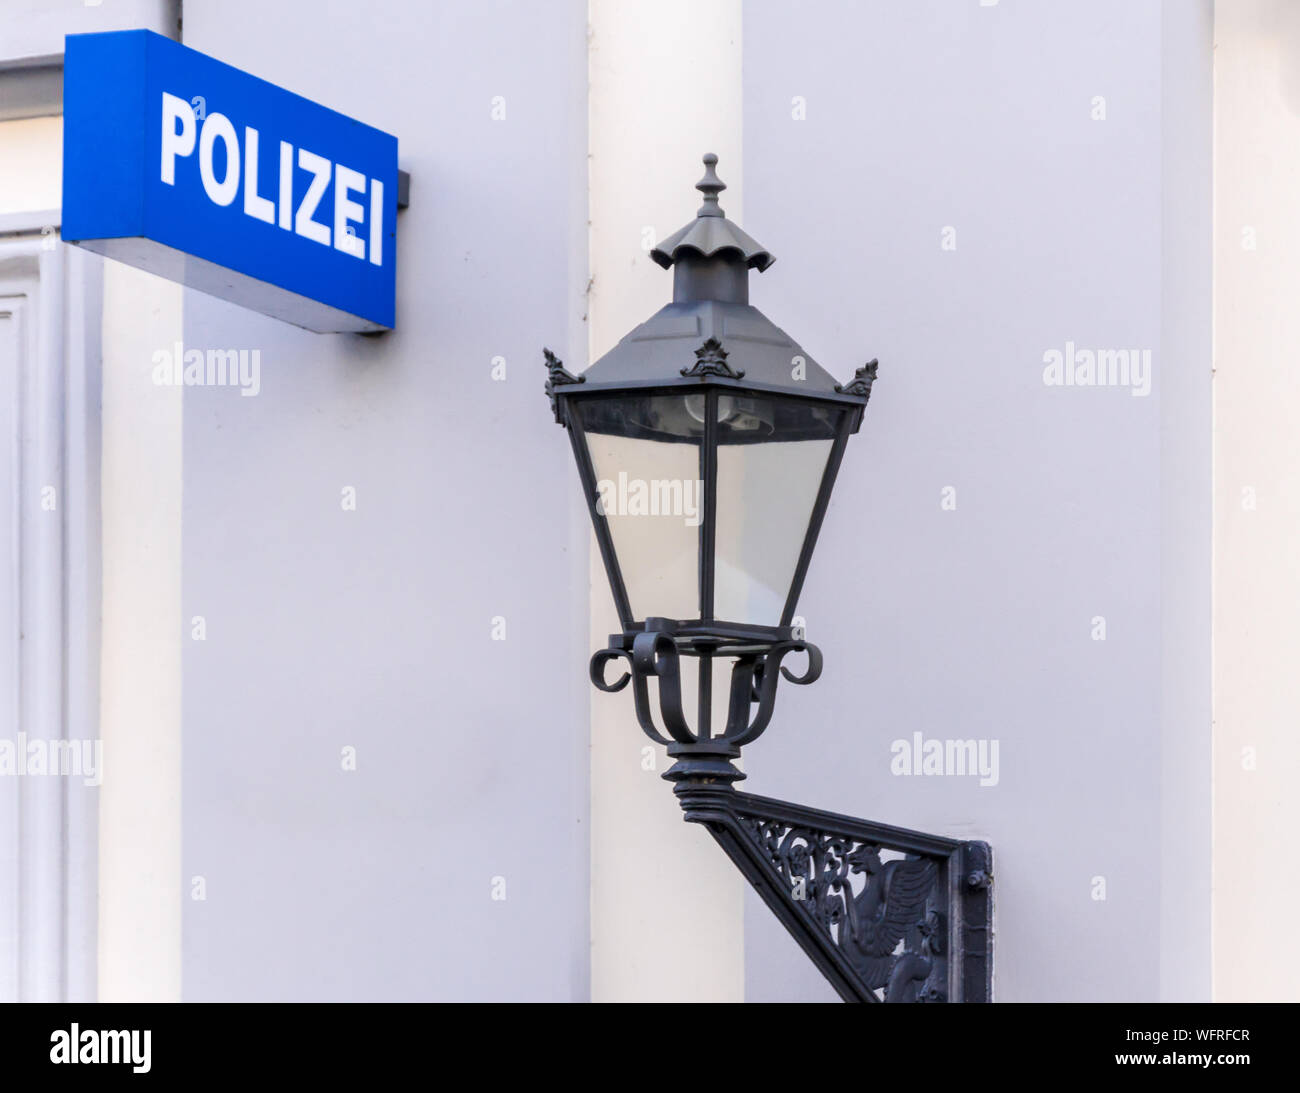 Low Angle View Of Police Sign And Lighting Equipment Stock Photo